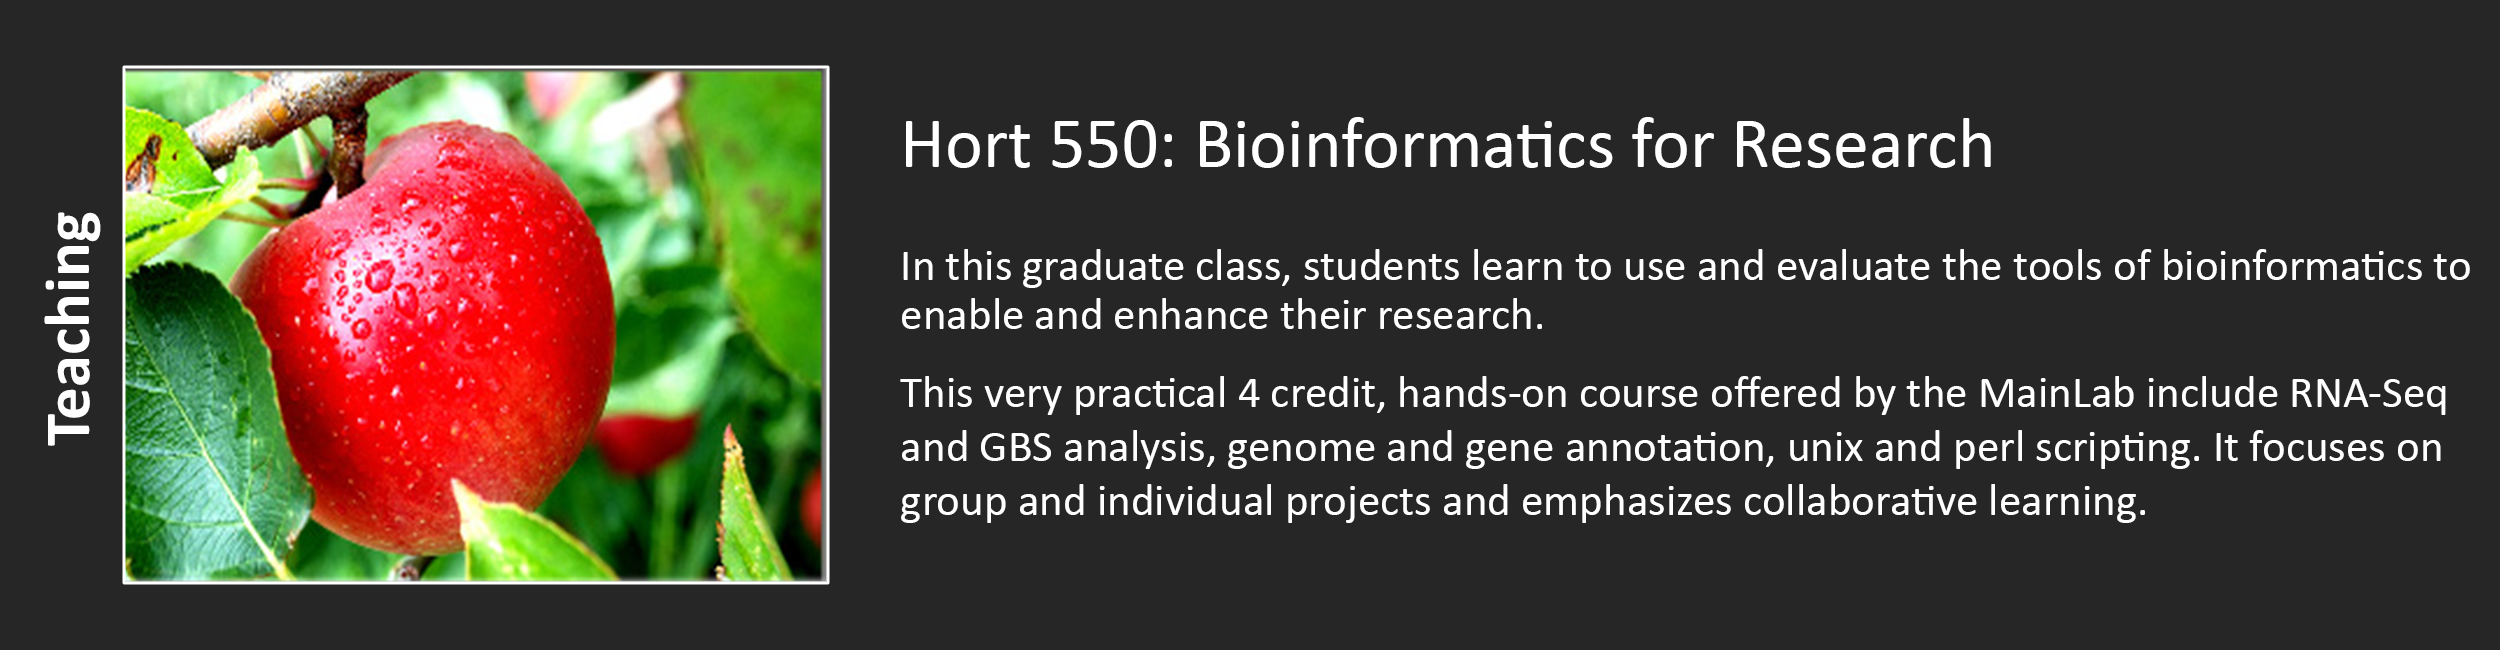 Hort 550: Bioinformatics for Research